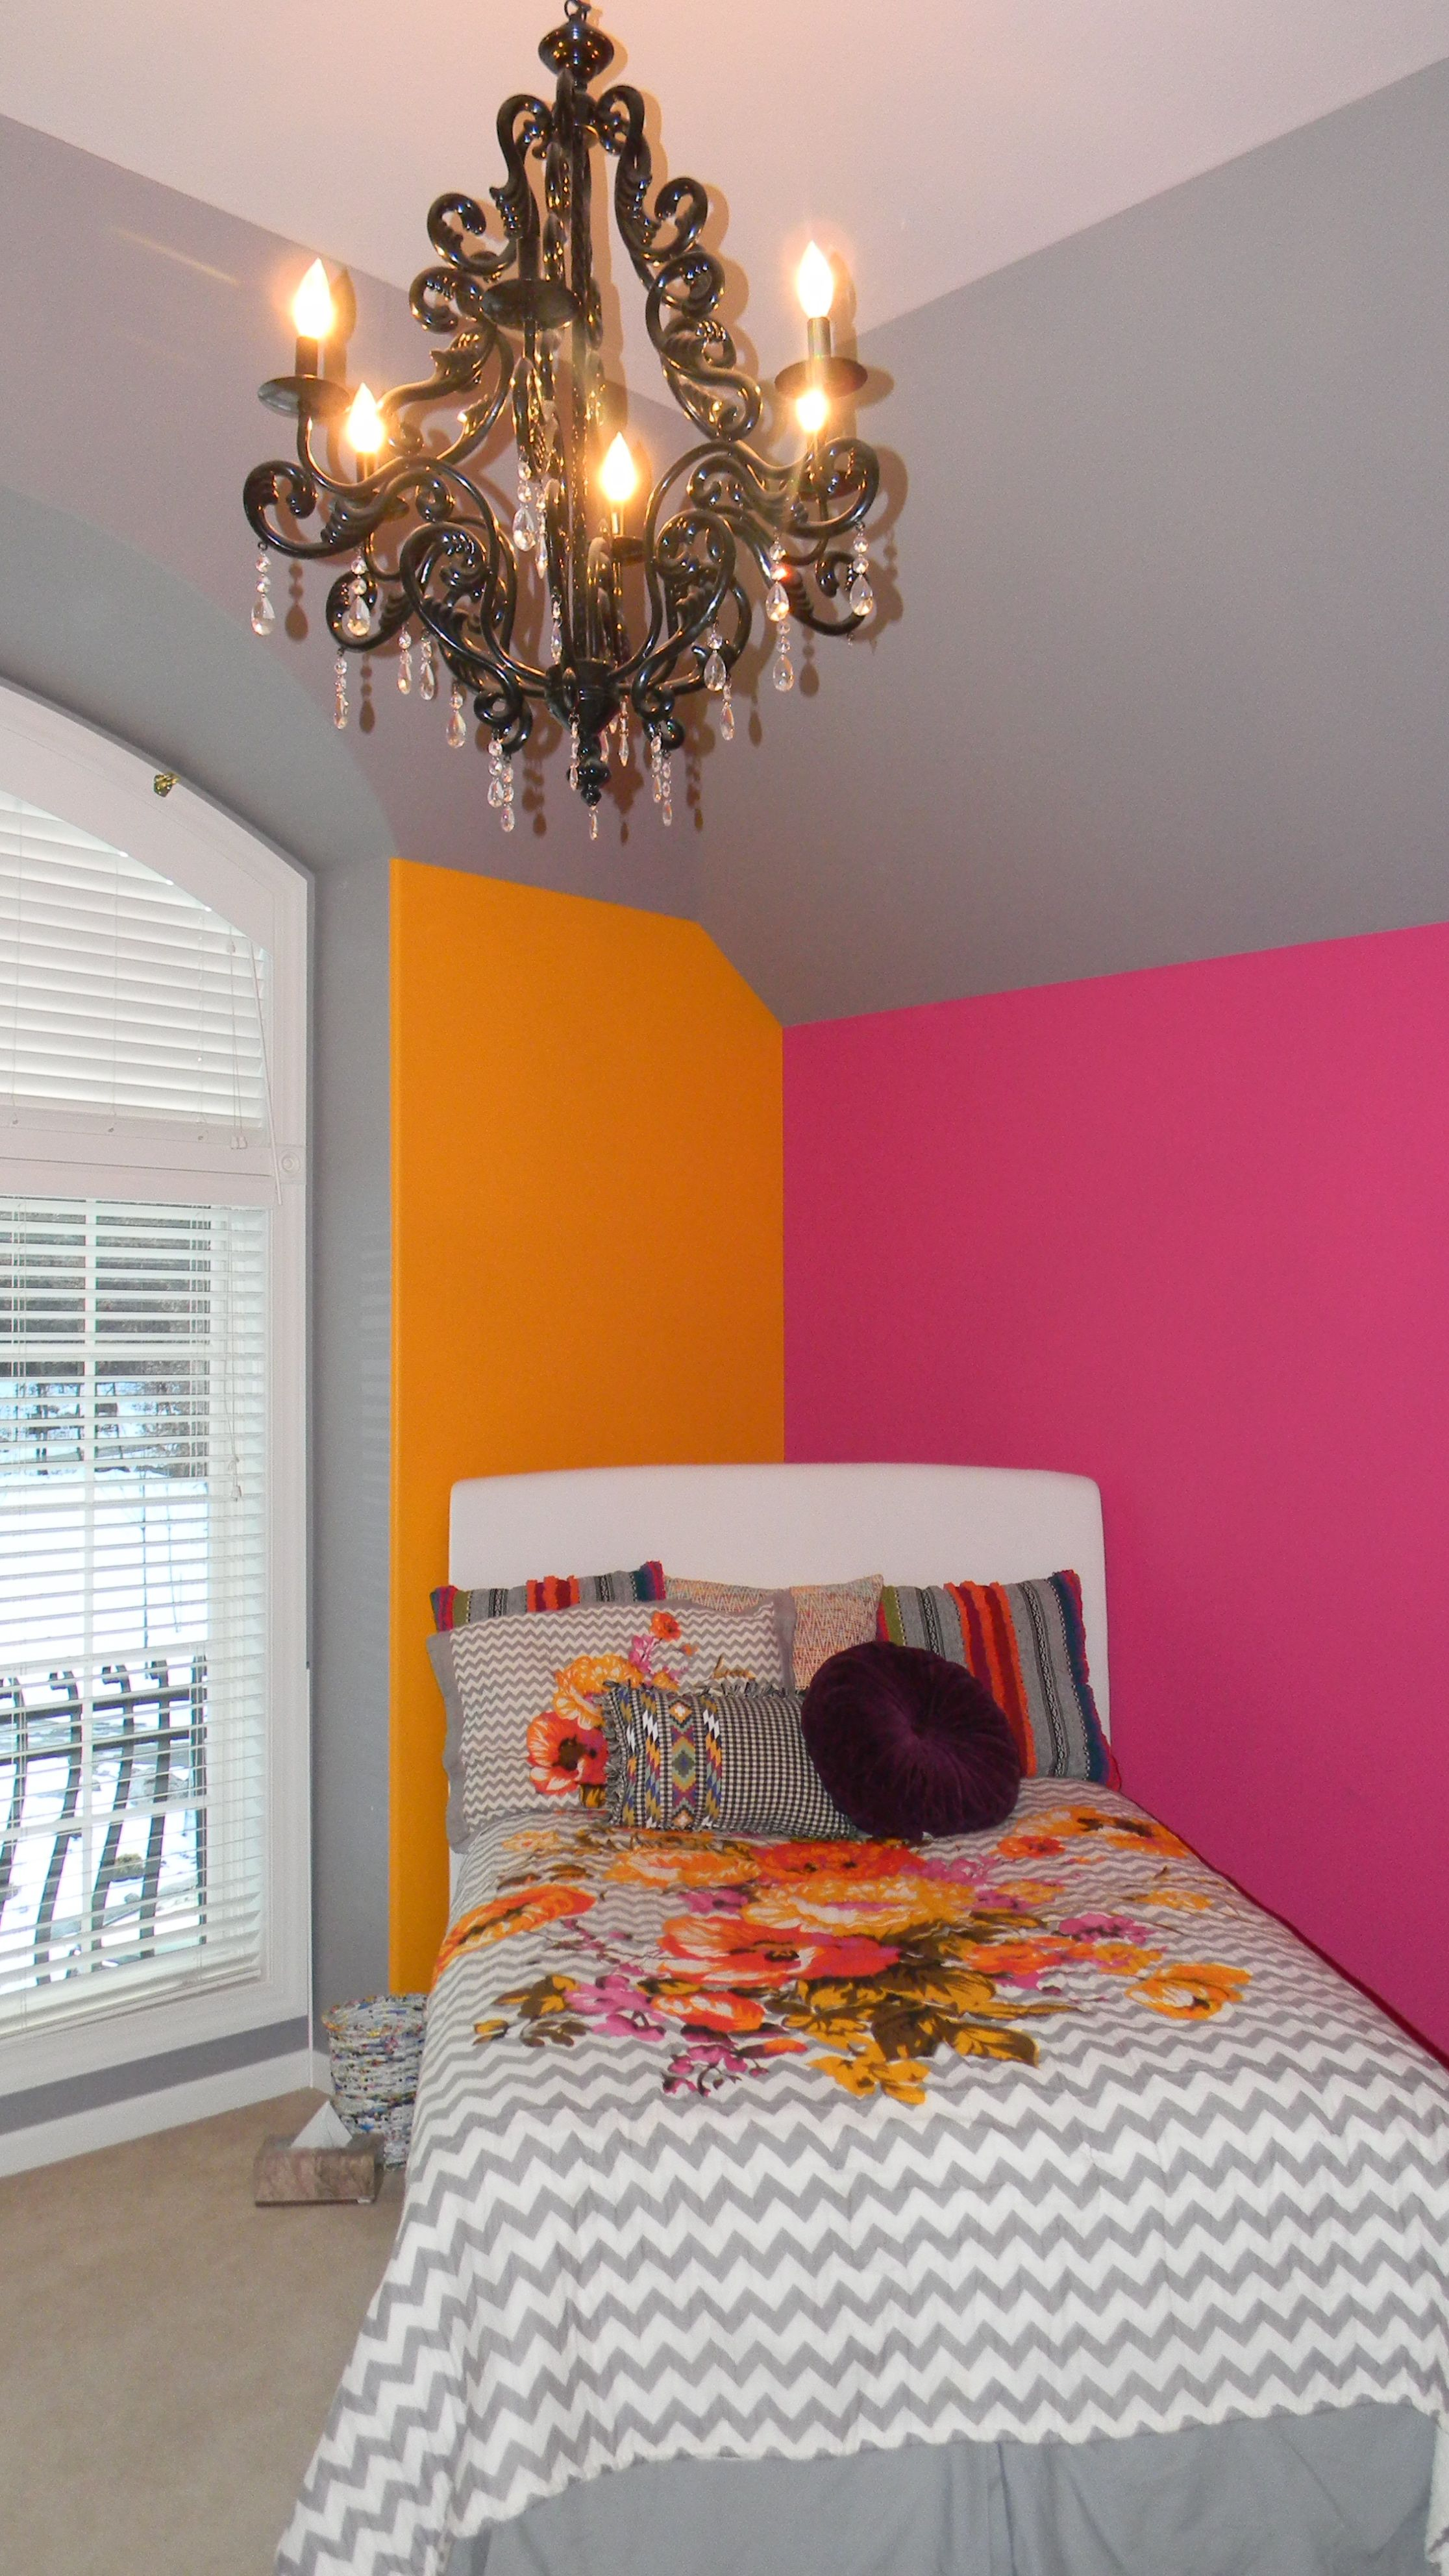 Girls bedroom painted grey orange & hot pink Painted by The